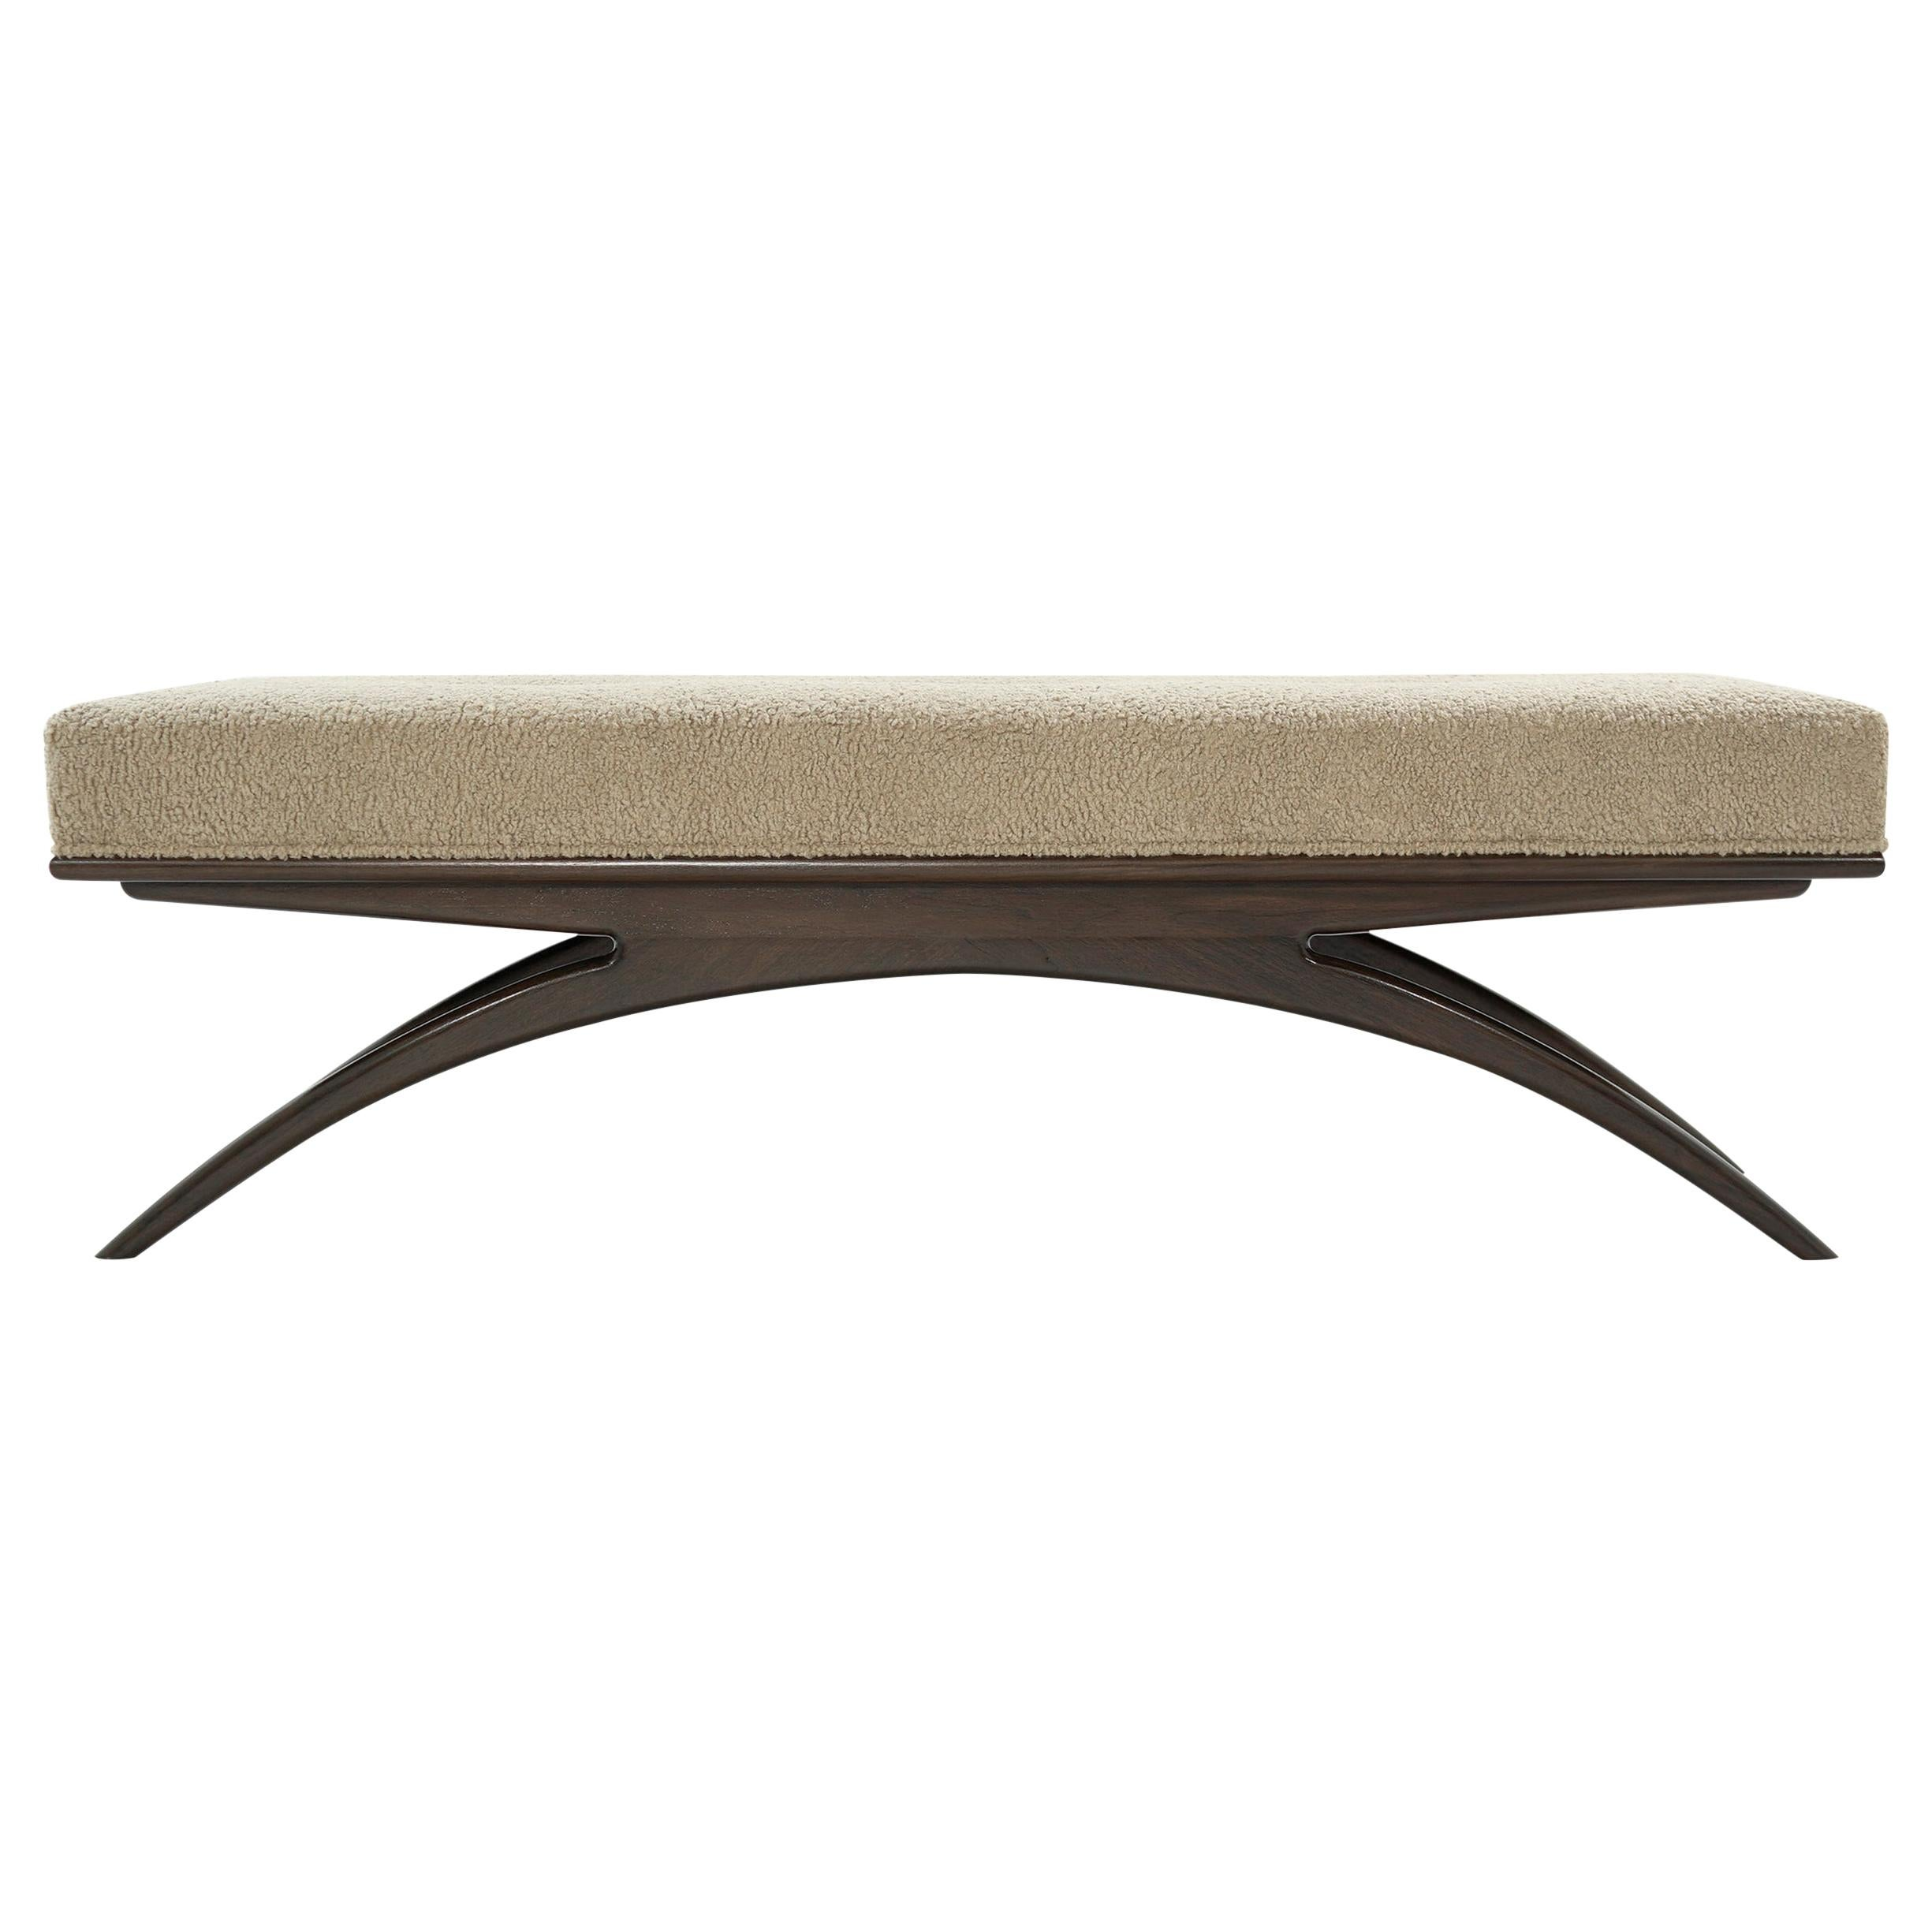 Convex Bench in Natural Bouclé by Stamford Modern